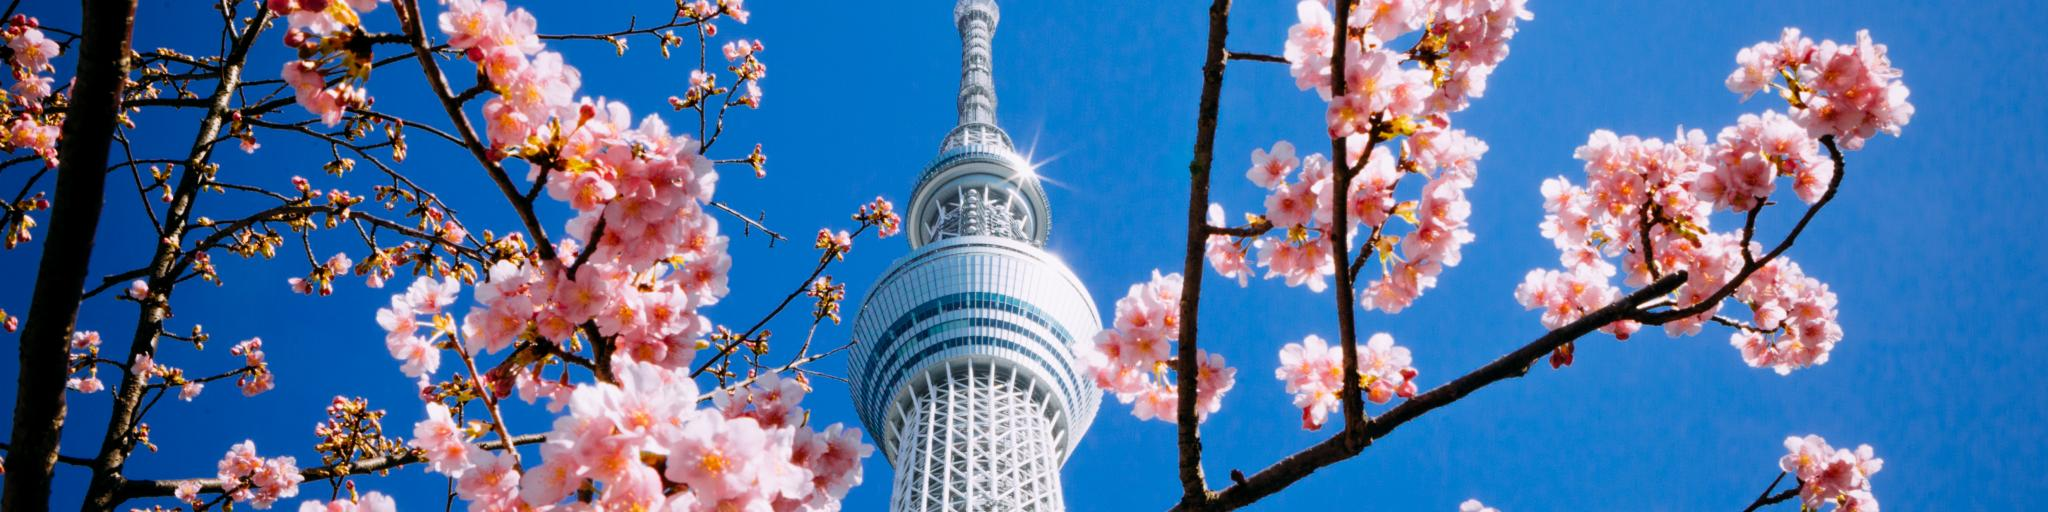 Cherry blossoms in front of the Tokyo Observation Deck